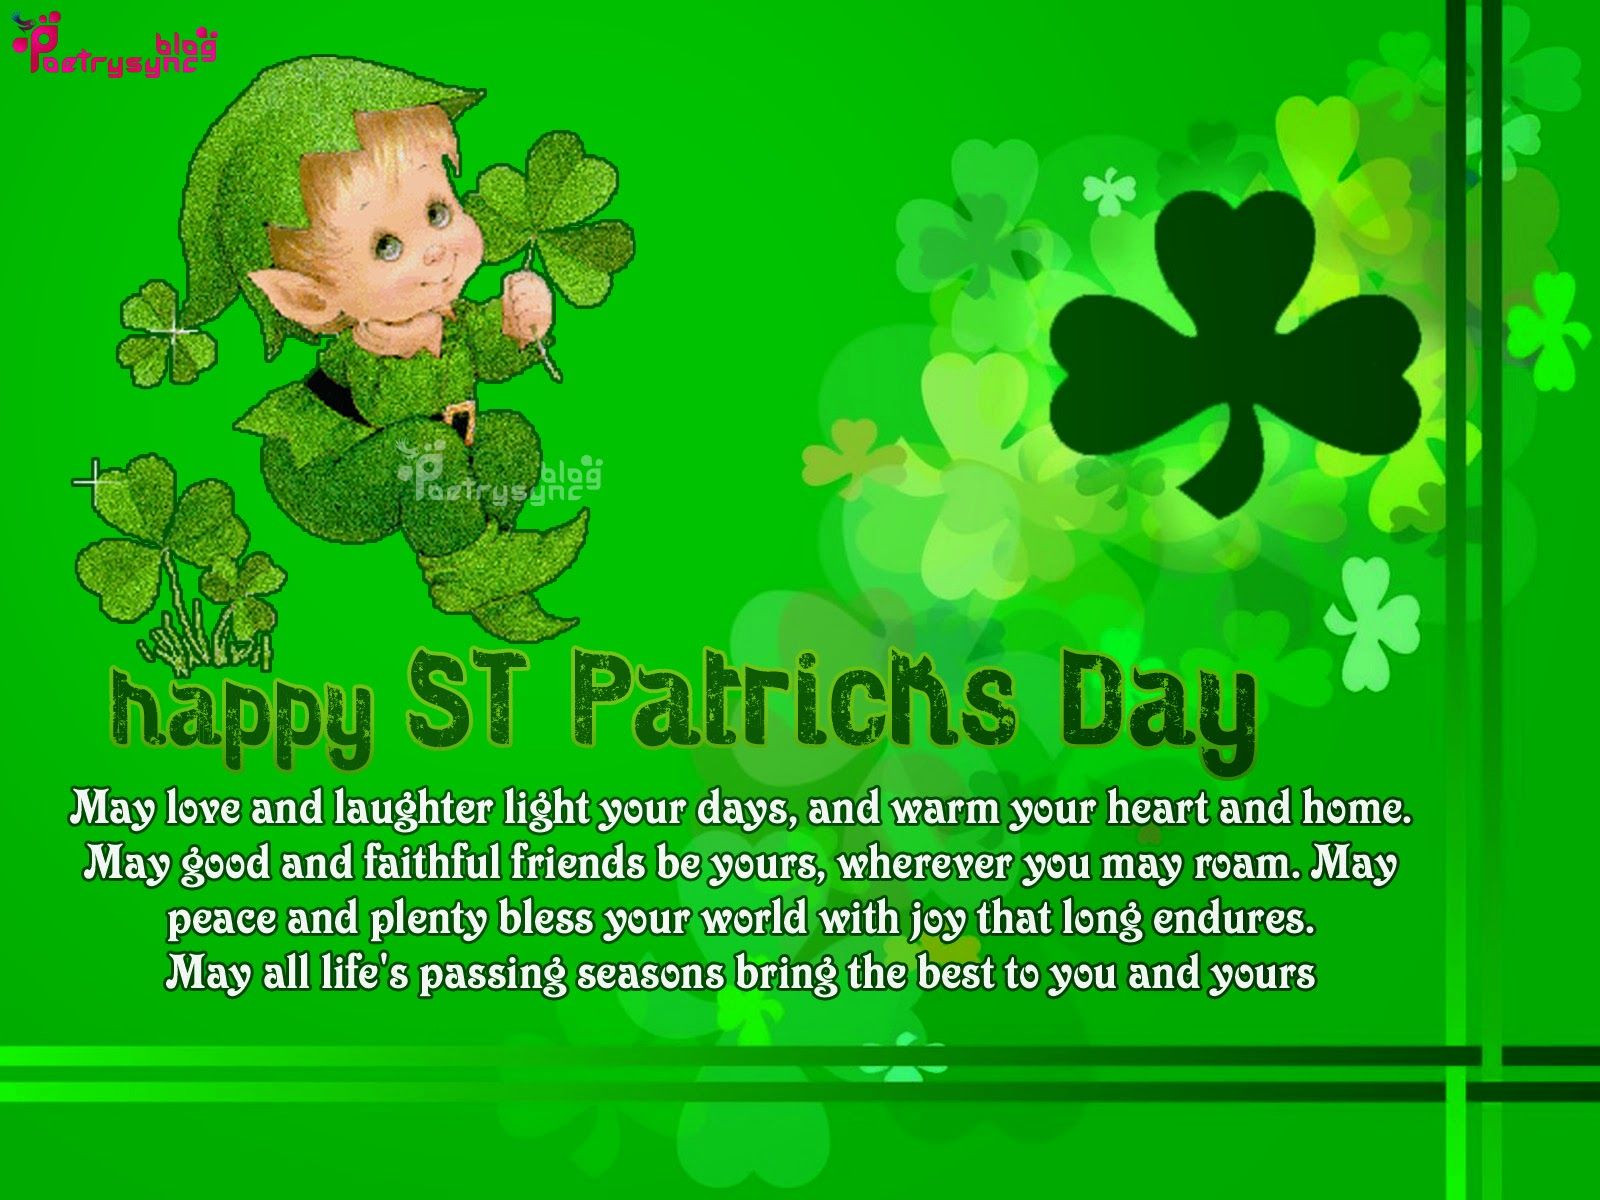 24 Ideas for Cute St Patrick Day Quotes - Home, Family ...